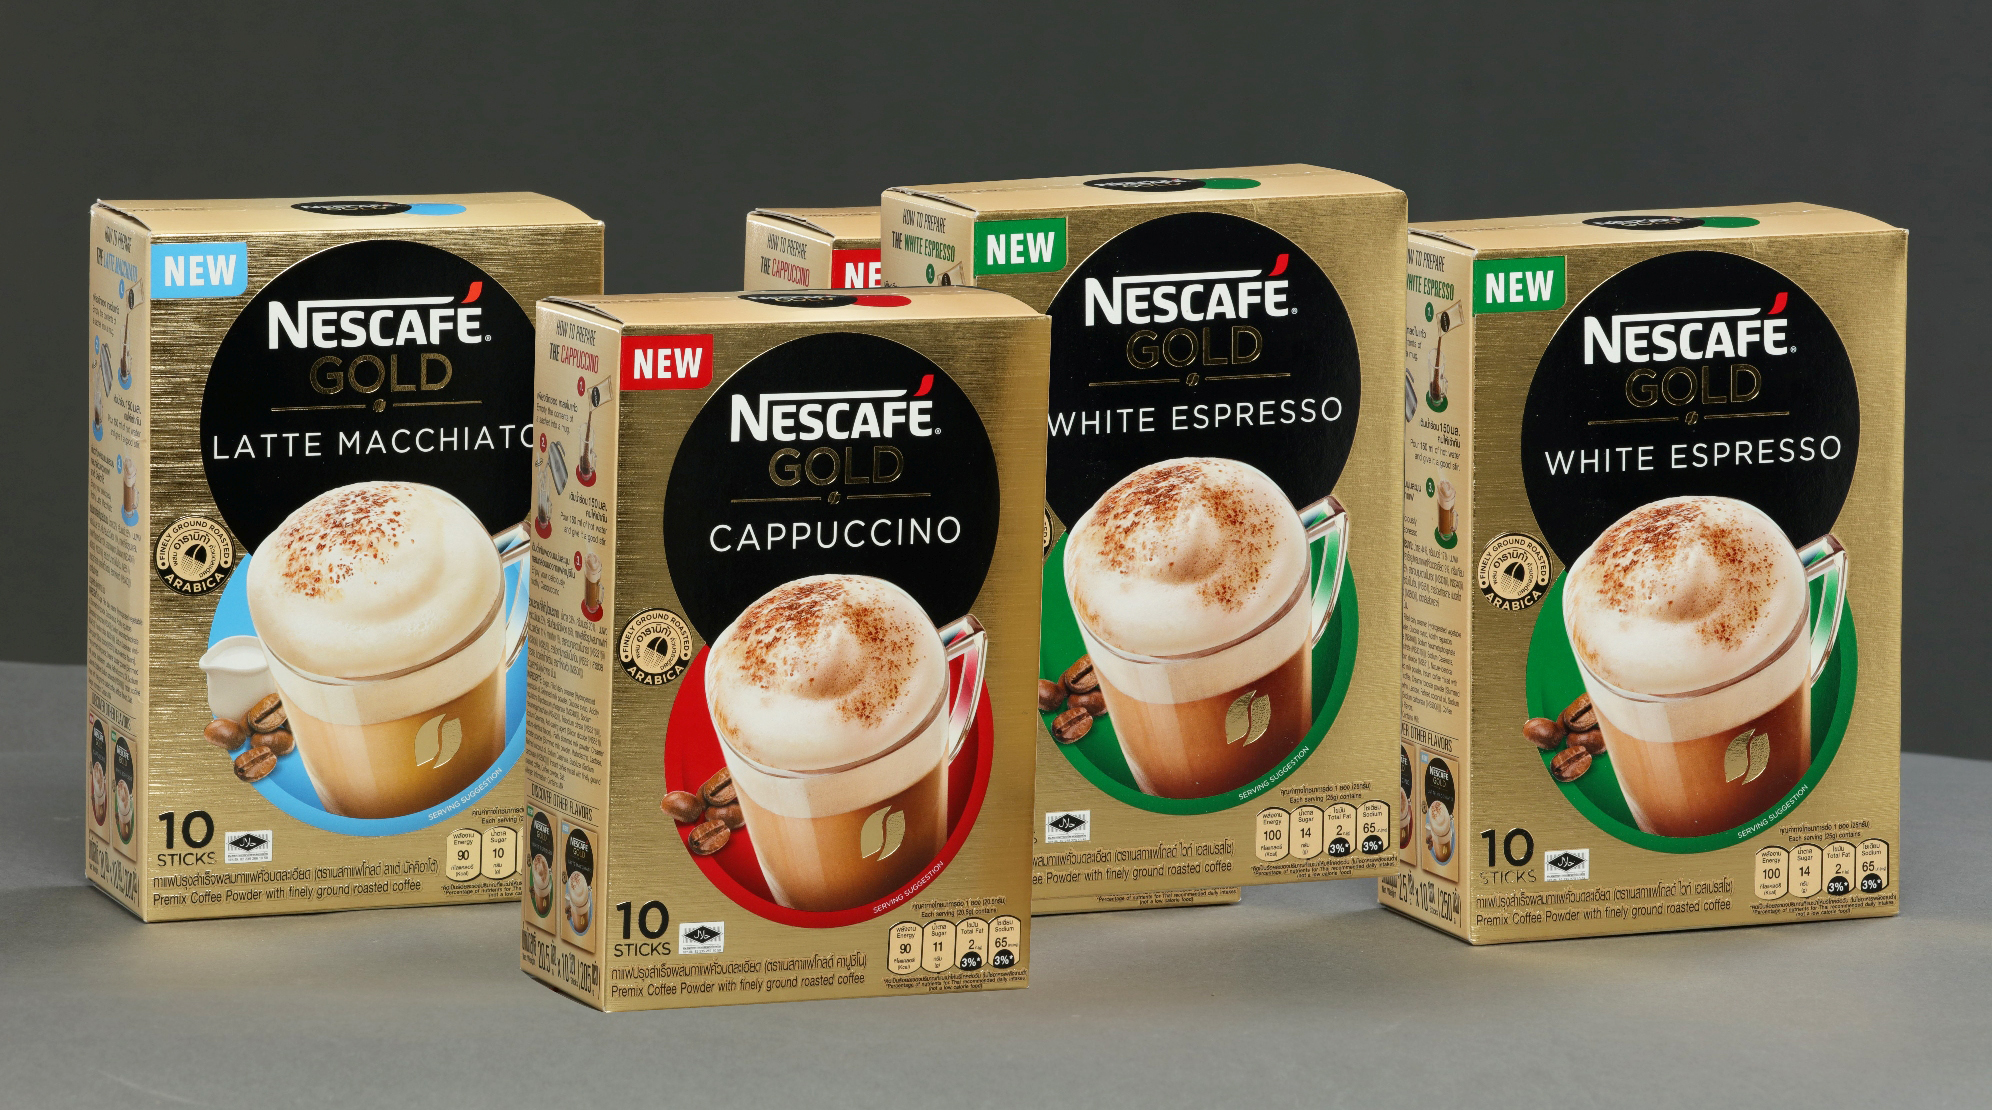 Nescafe Instant Arabica Coffee Taste The Difference Of The New NescafÉ Gold Collection